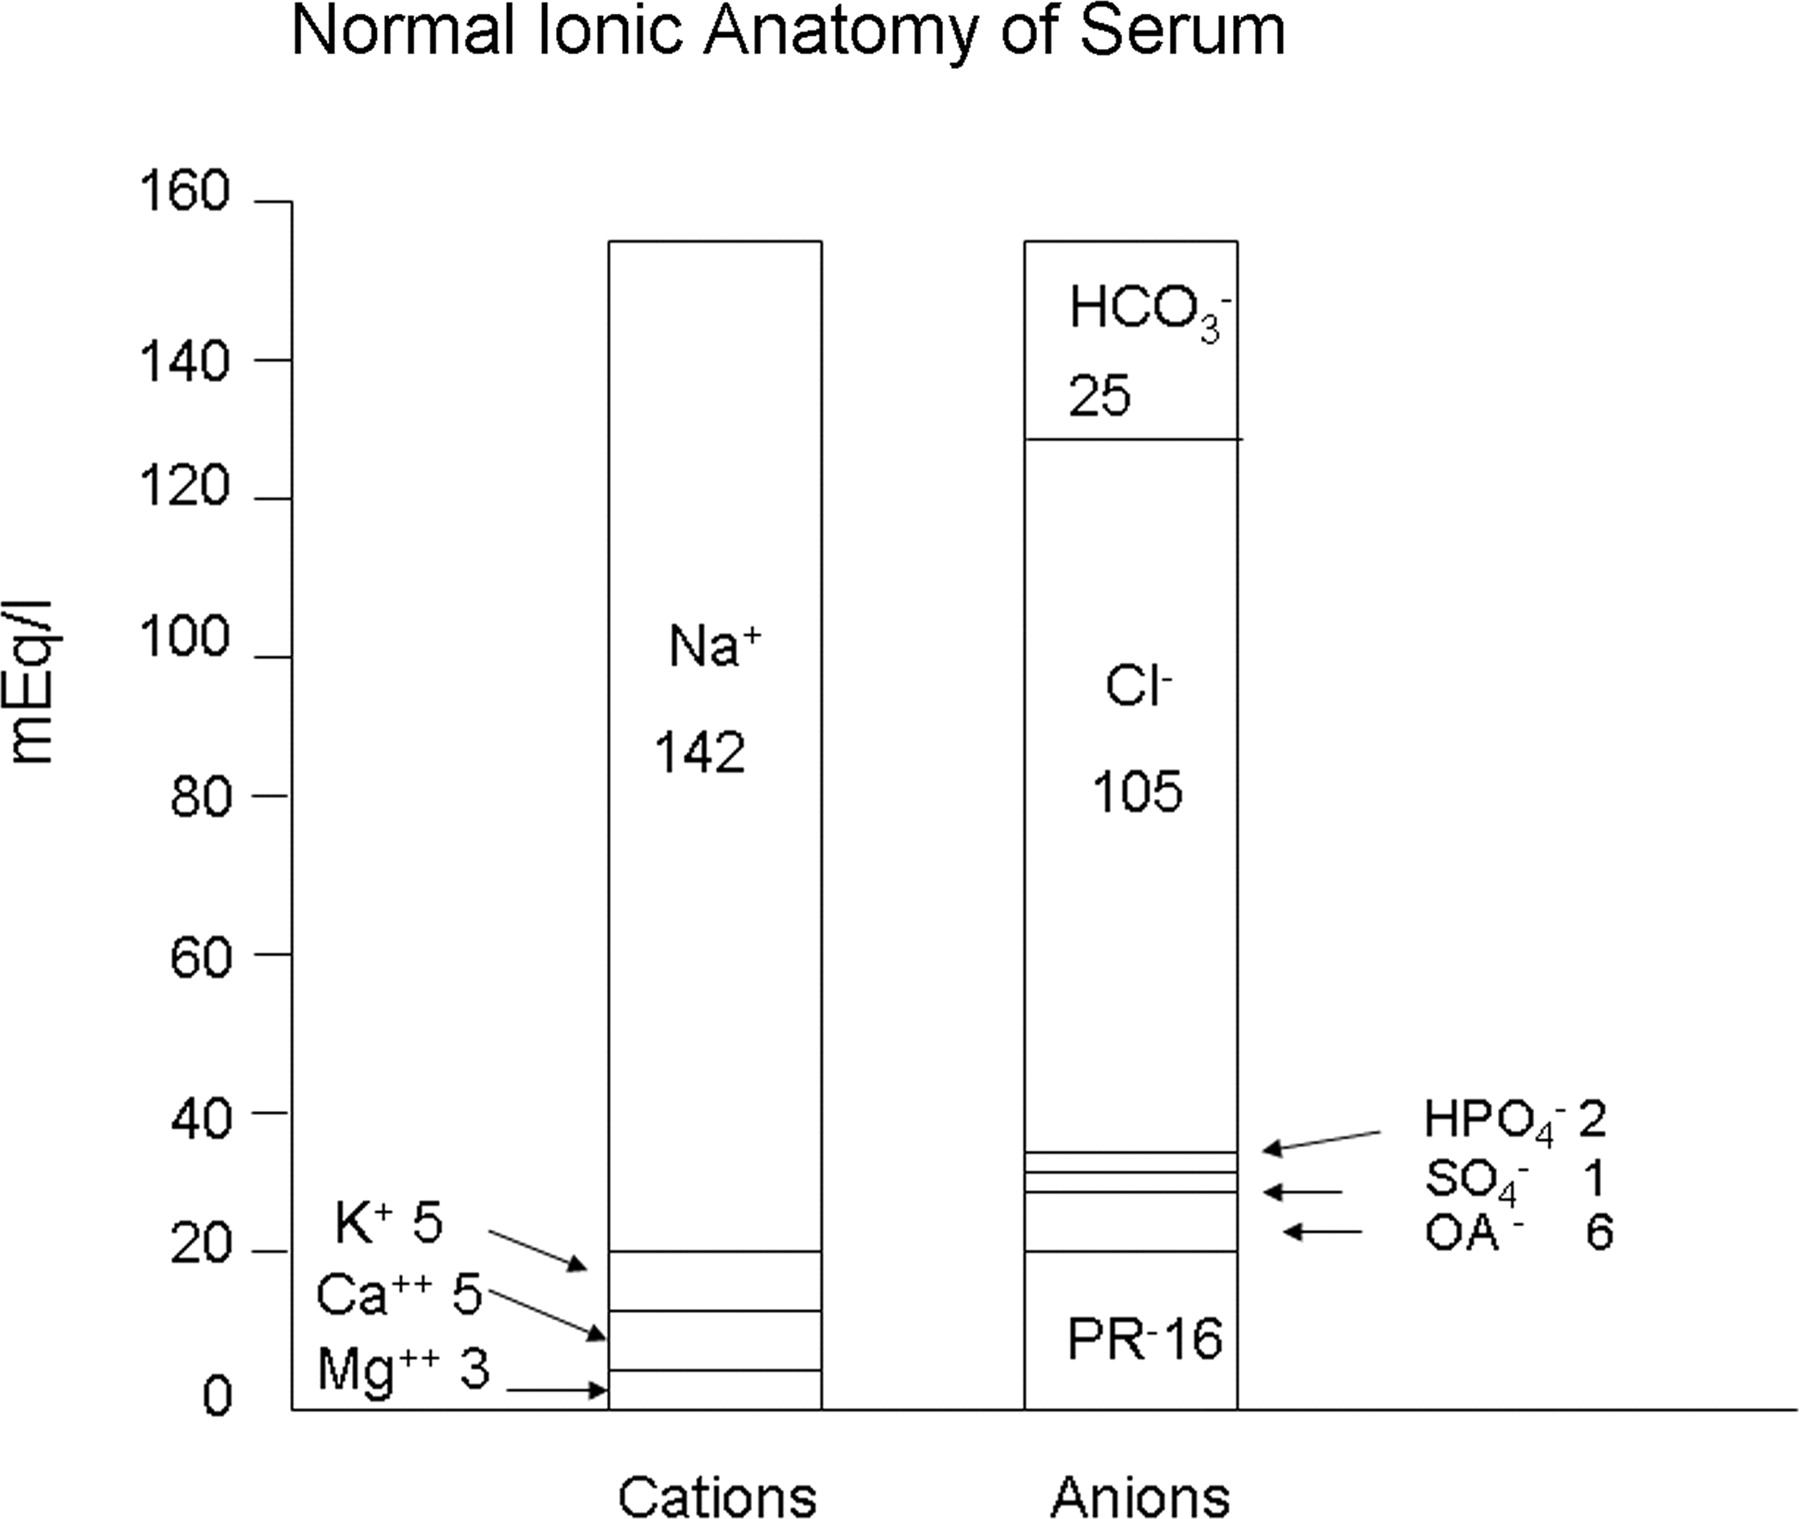 Serum Anion Gap: Its Uses and Limitations in Clinical